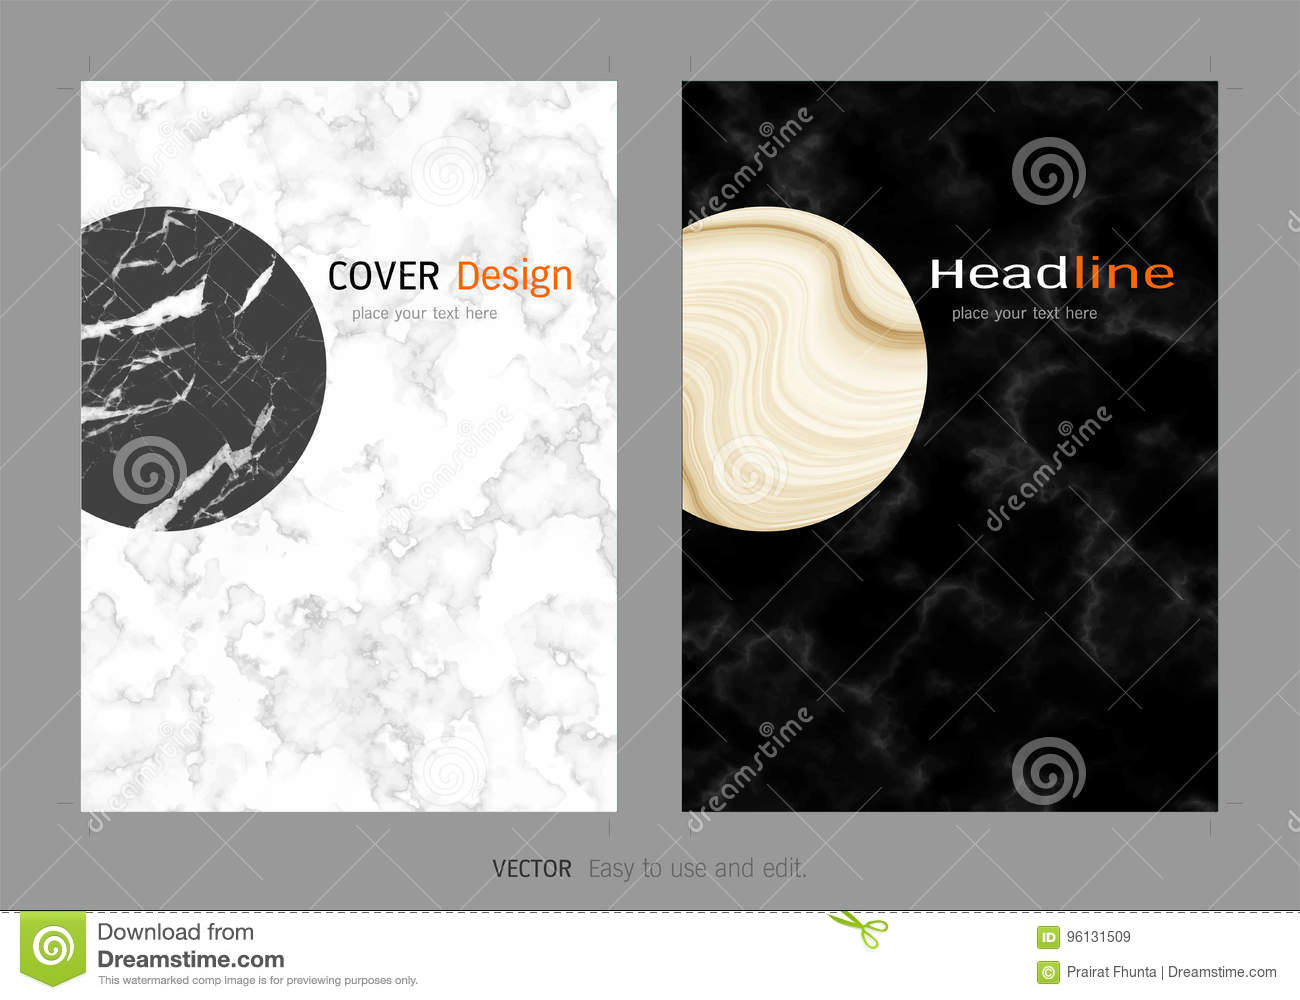 creative cover design layout template, marble texture background